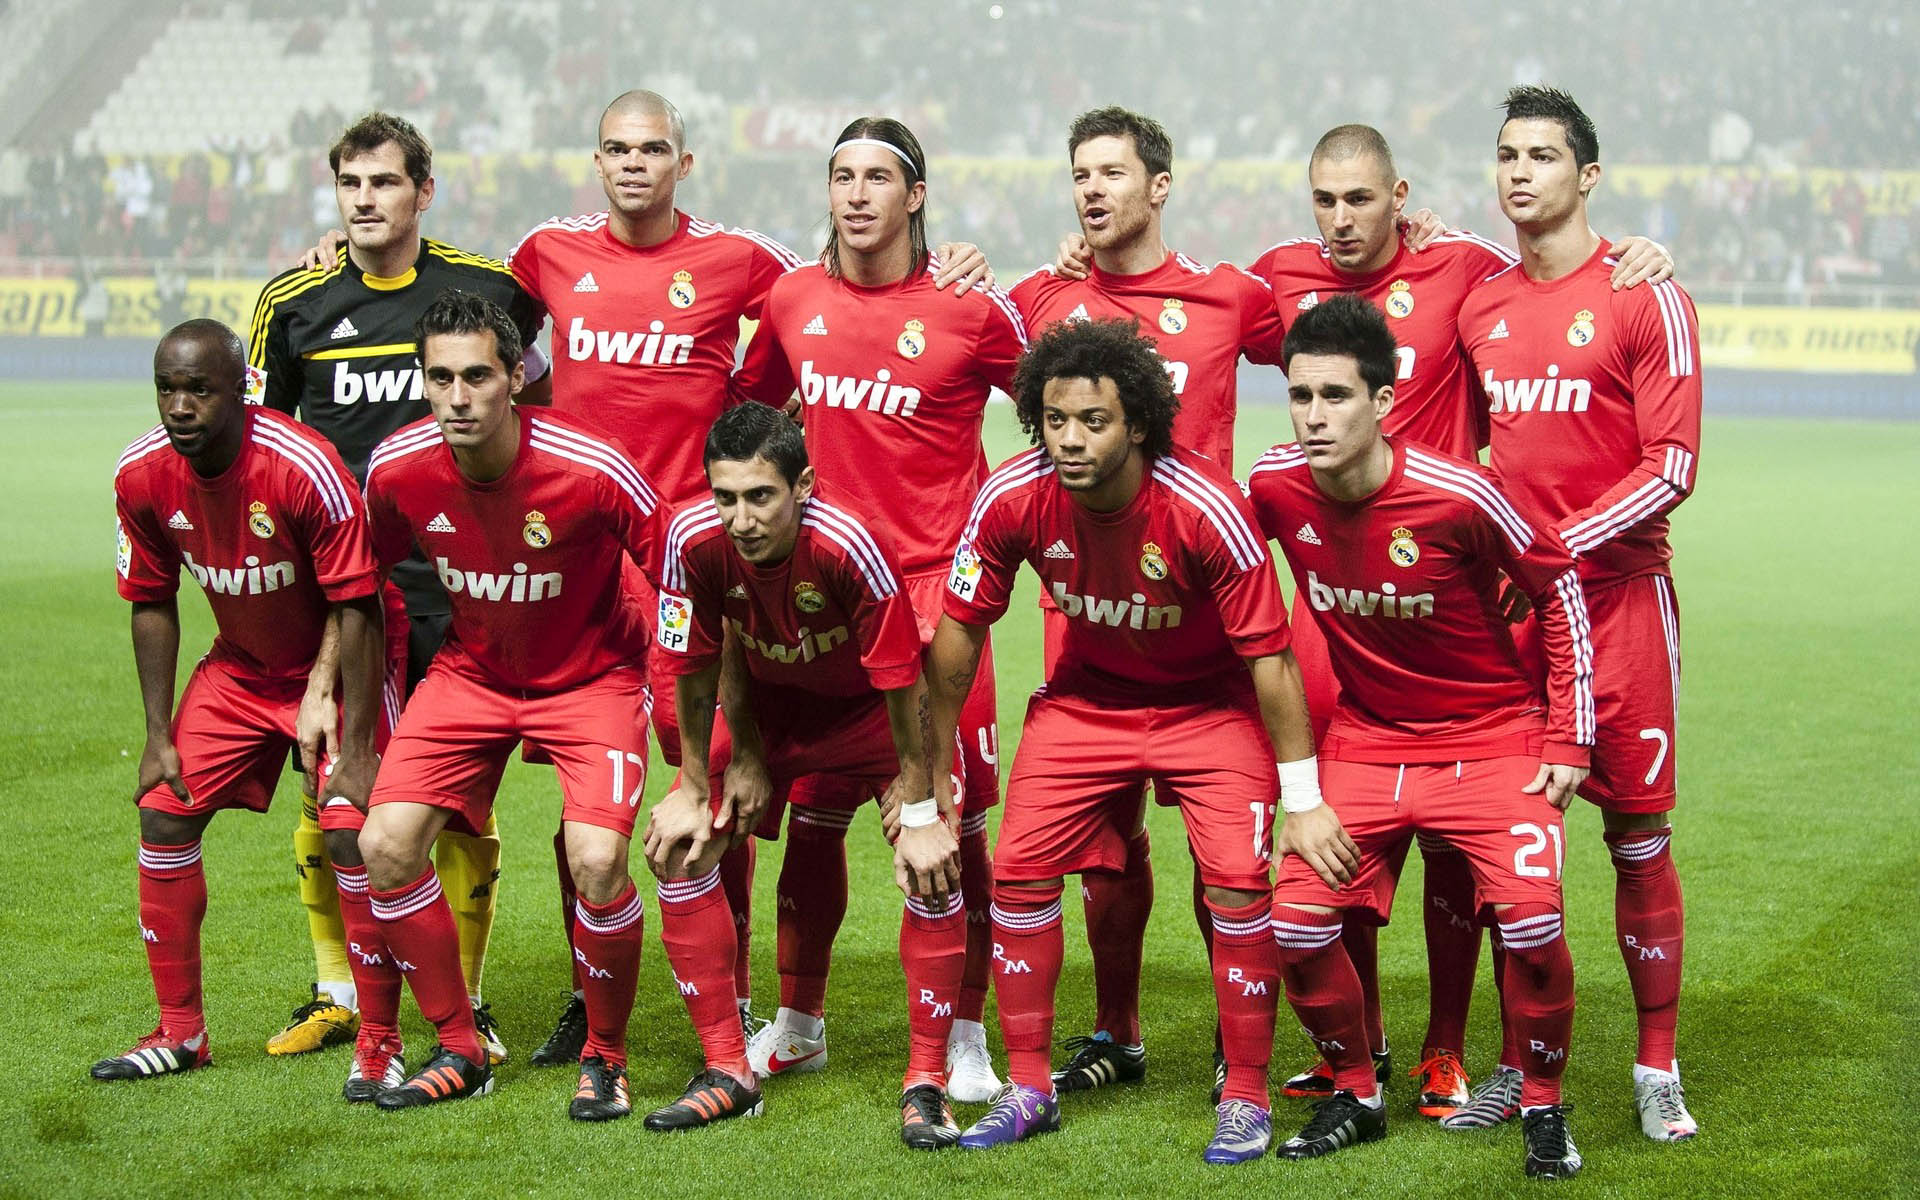 Sport Wallpaper Real Madrid: Real Madrid C.F Amazing High Quality Wallpapers